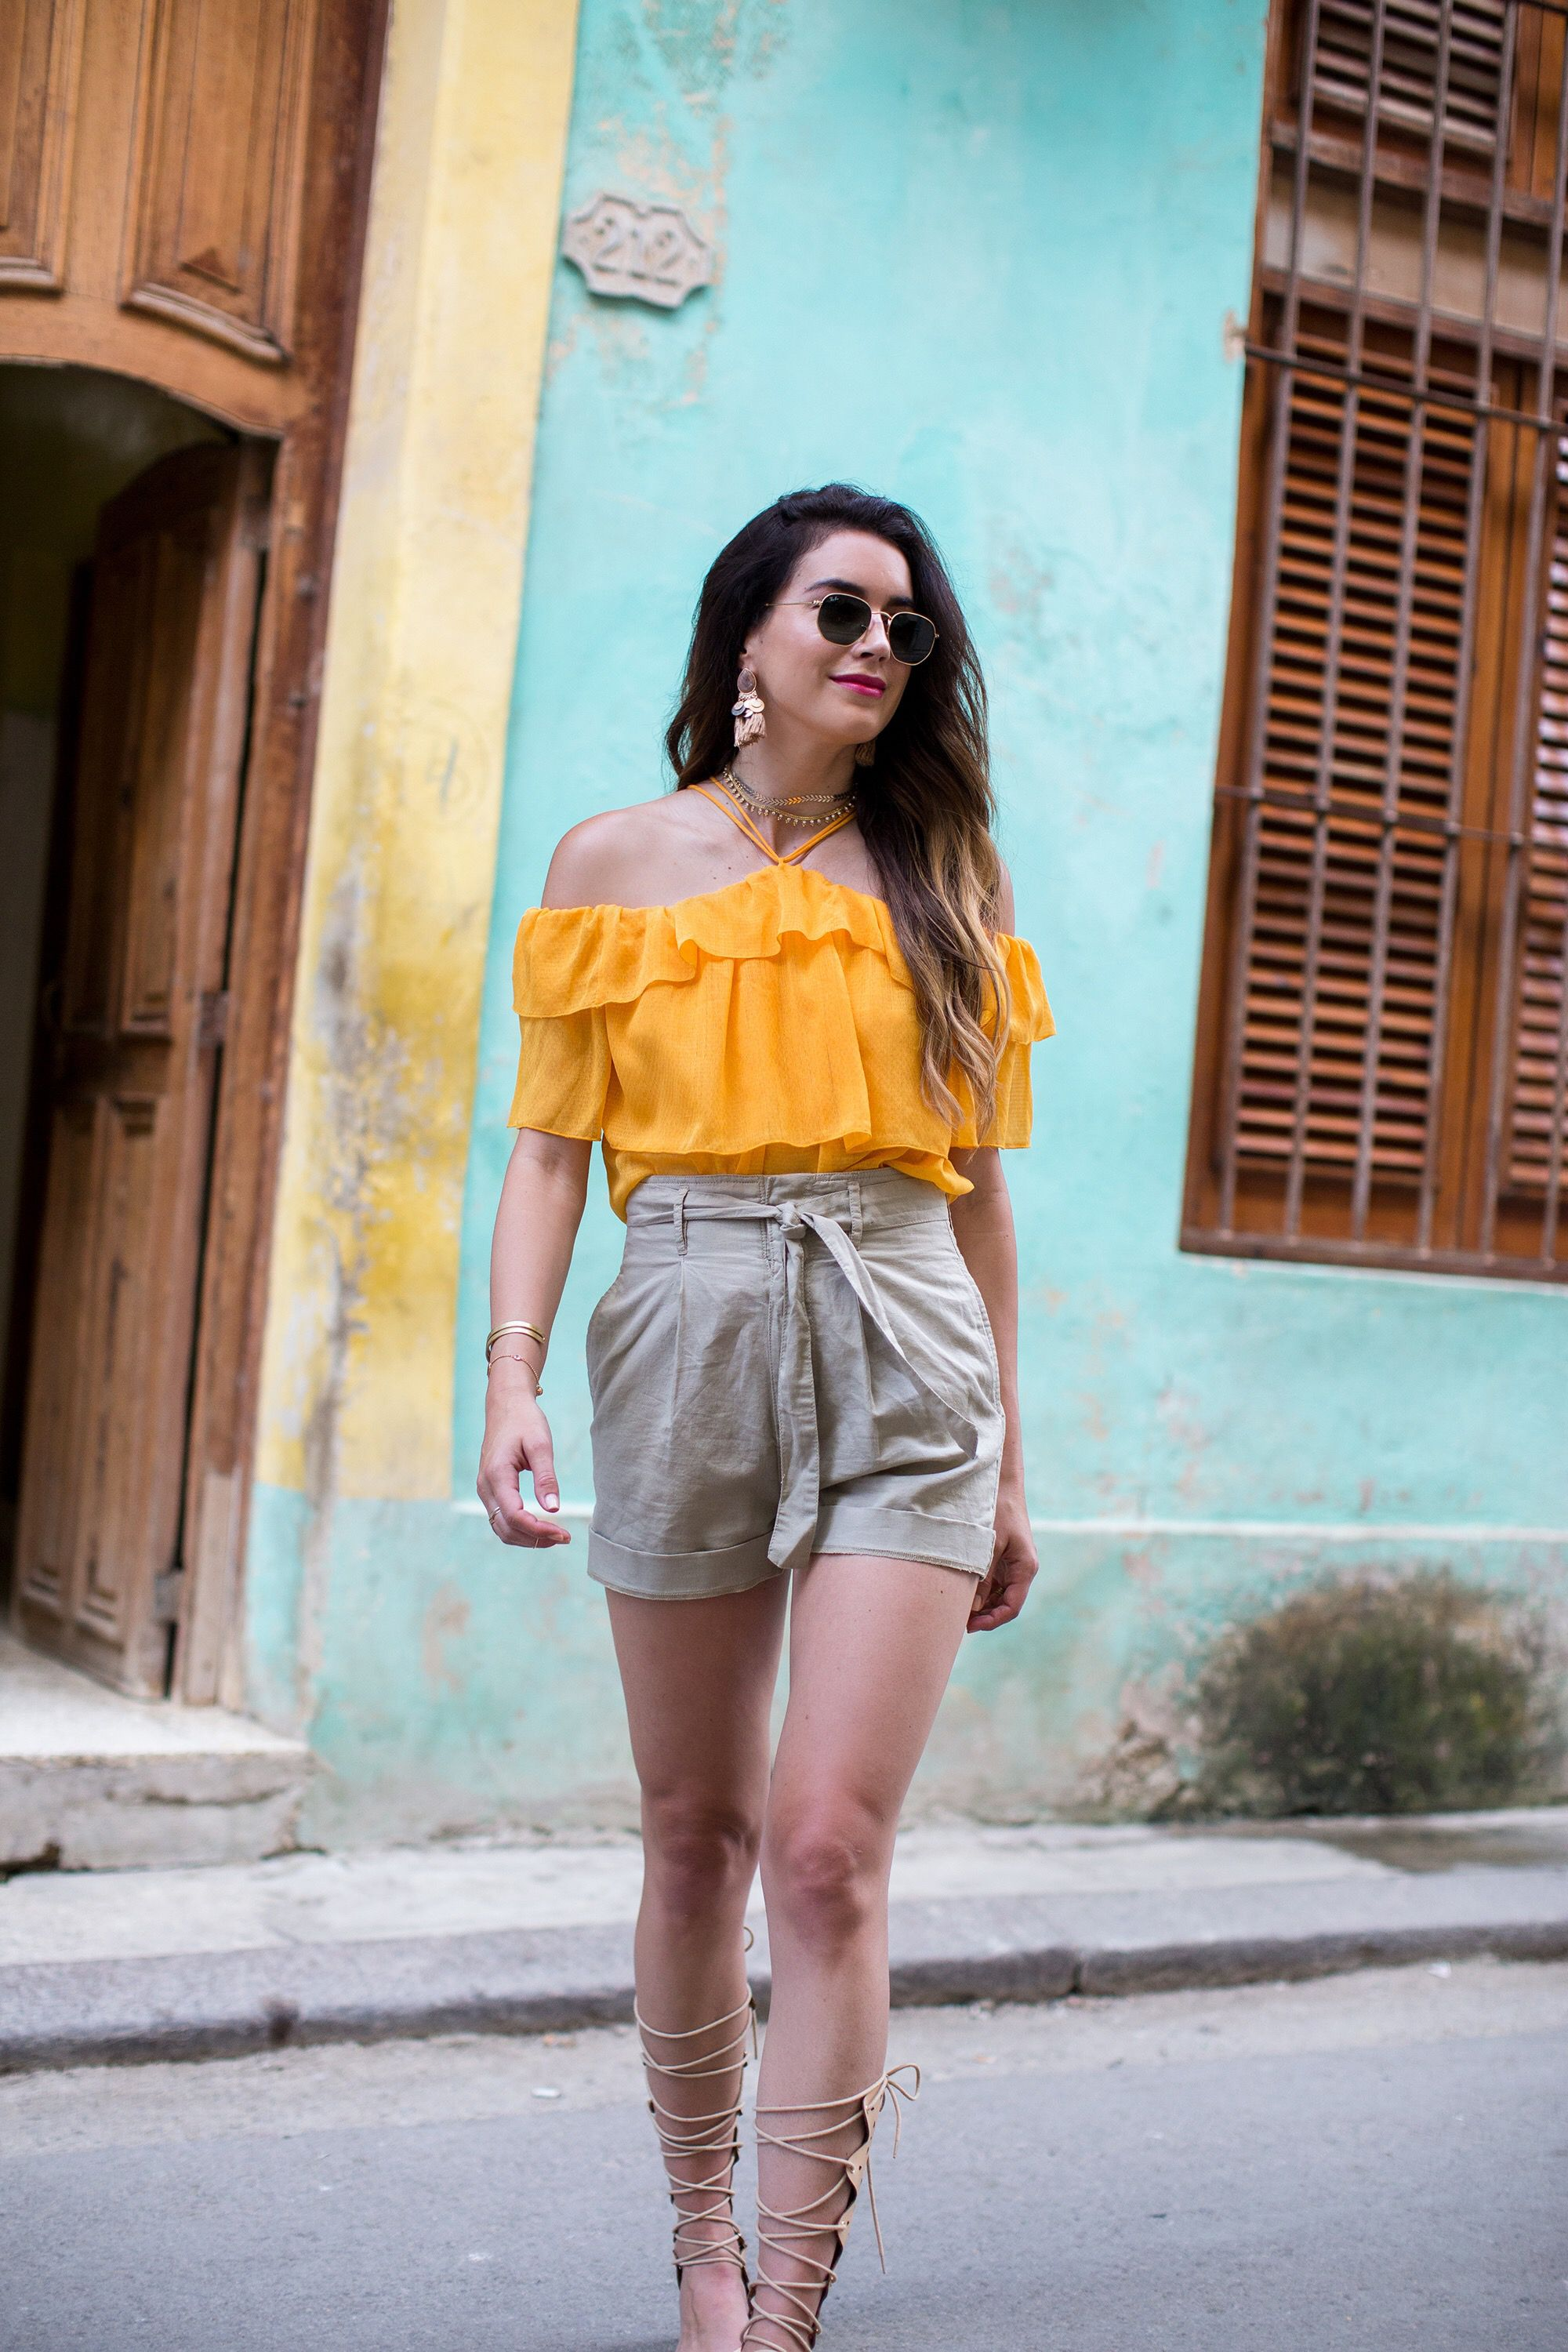 c63fec321238 Cuba has such a colorful vibe that this H&M outfit was perfect for a night  on the town in Havana!